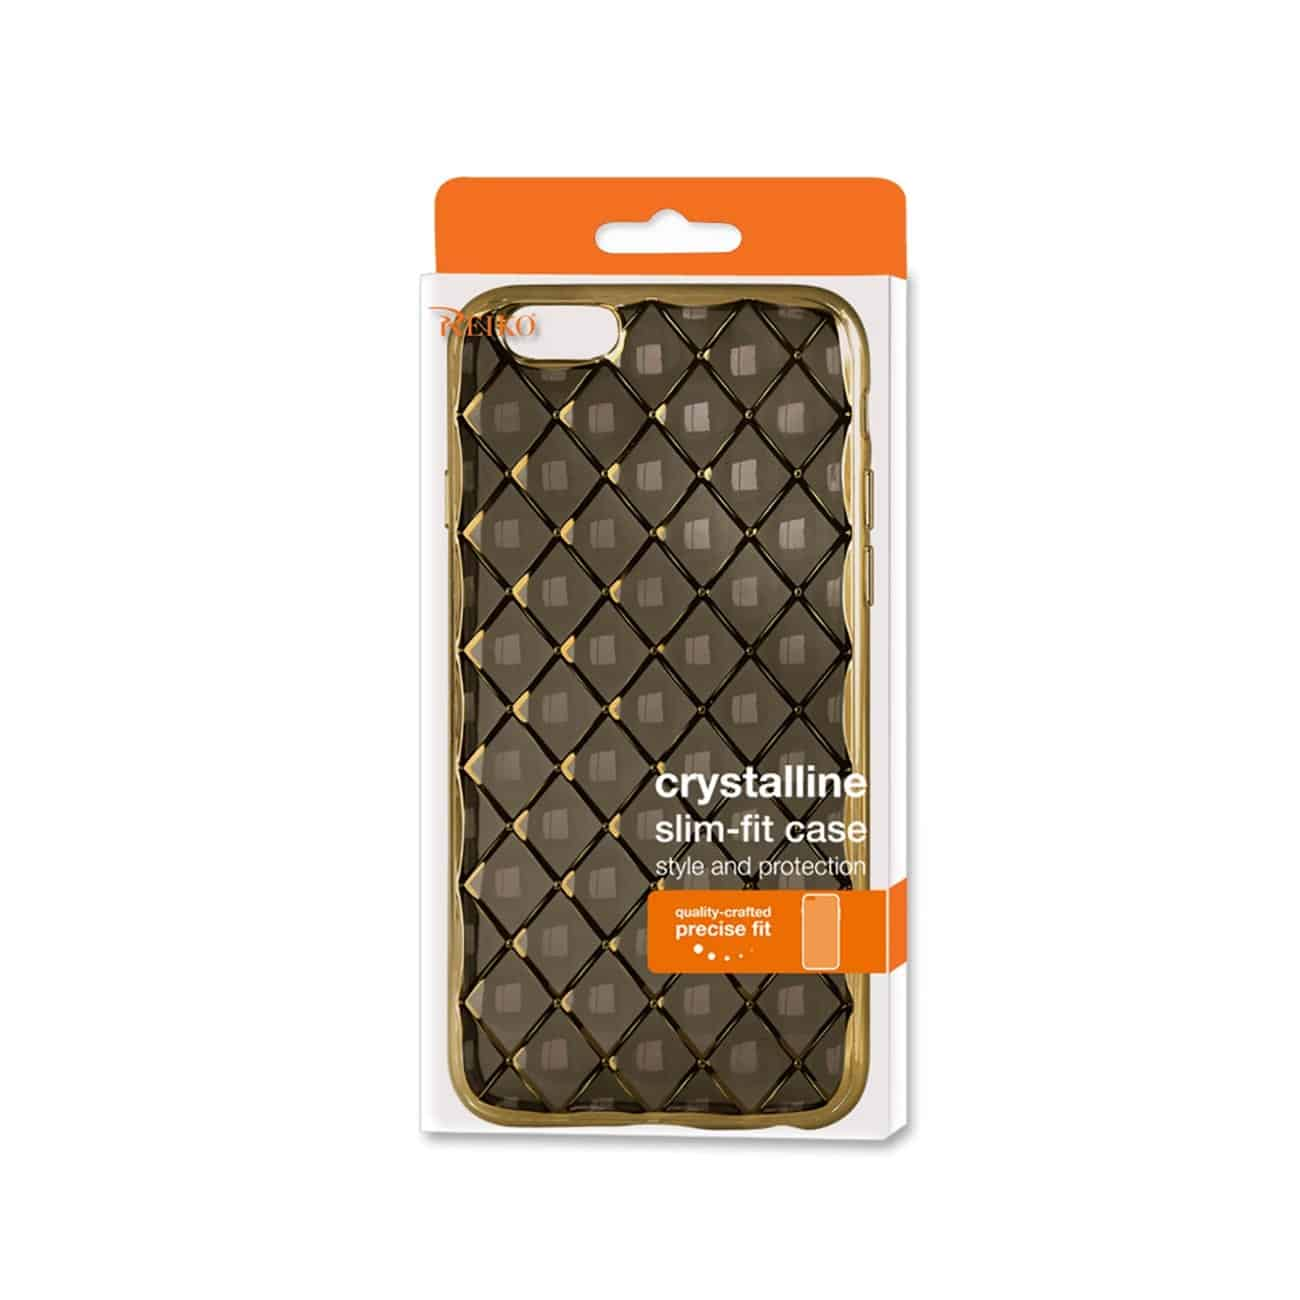 IPHONE 6S PLUS FLEXIBLE 3D RHOMBUS PATTERN TPU CASE WITH SHINY FRAME IN BLACK